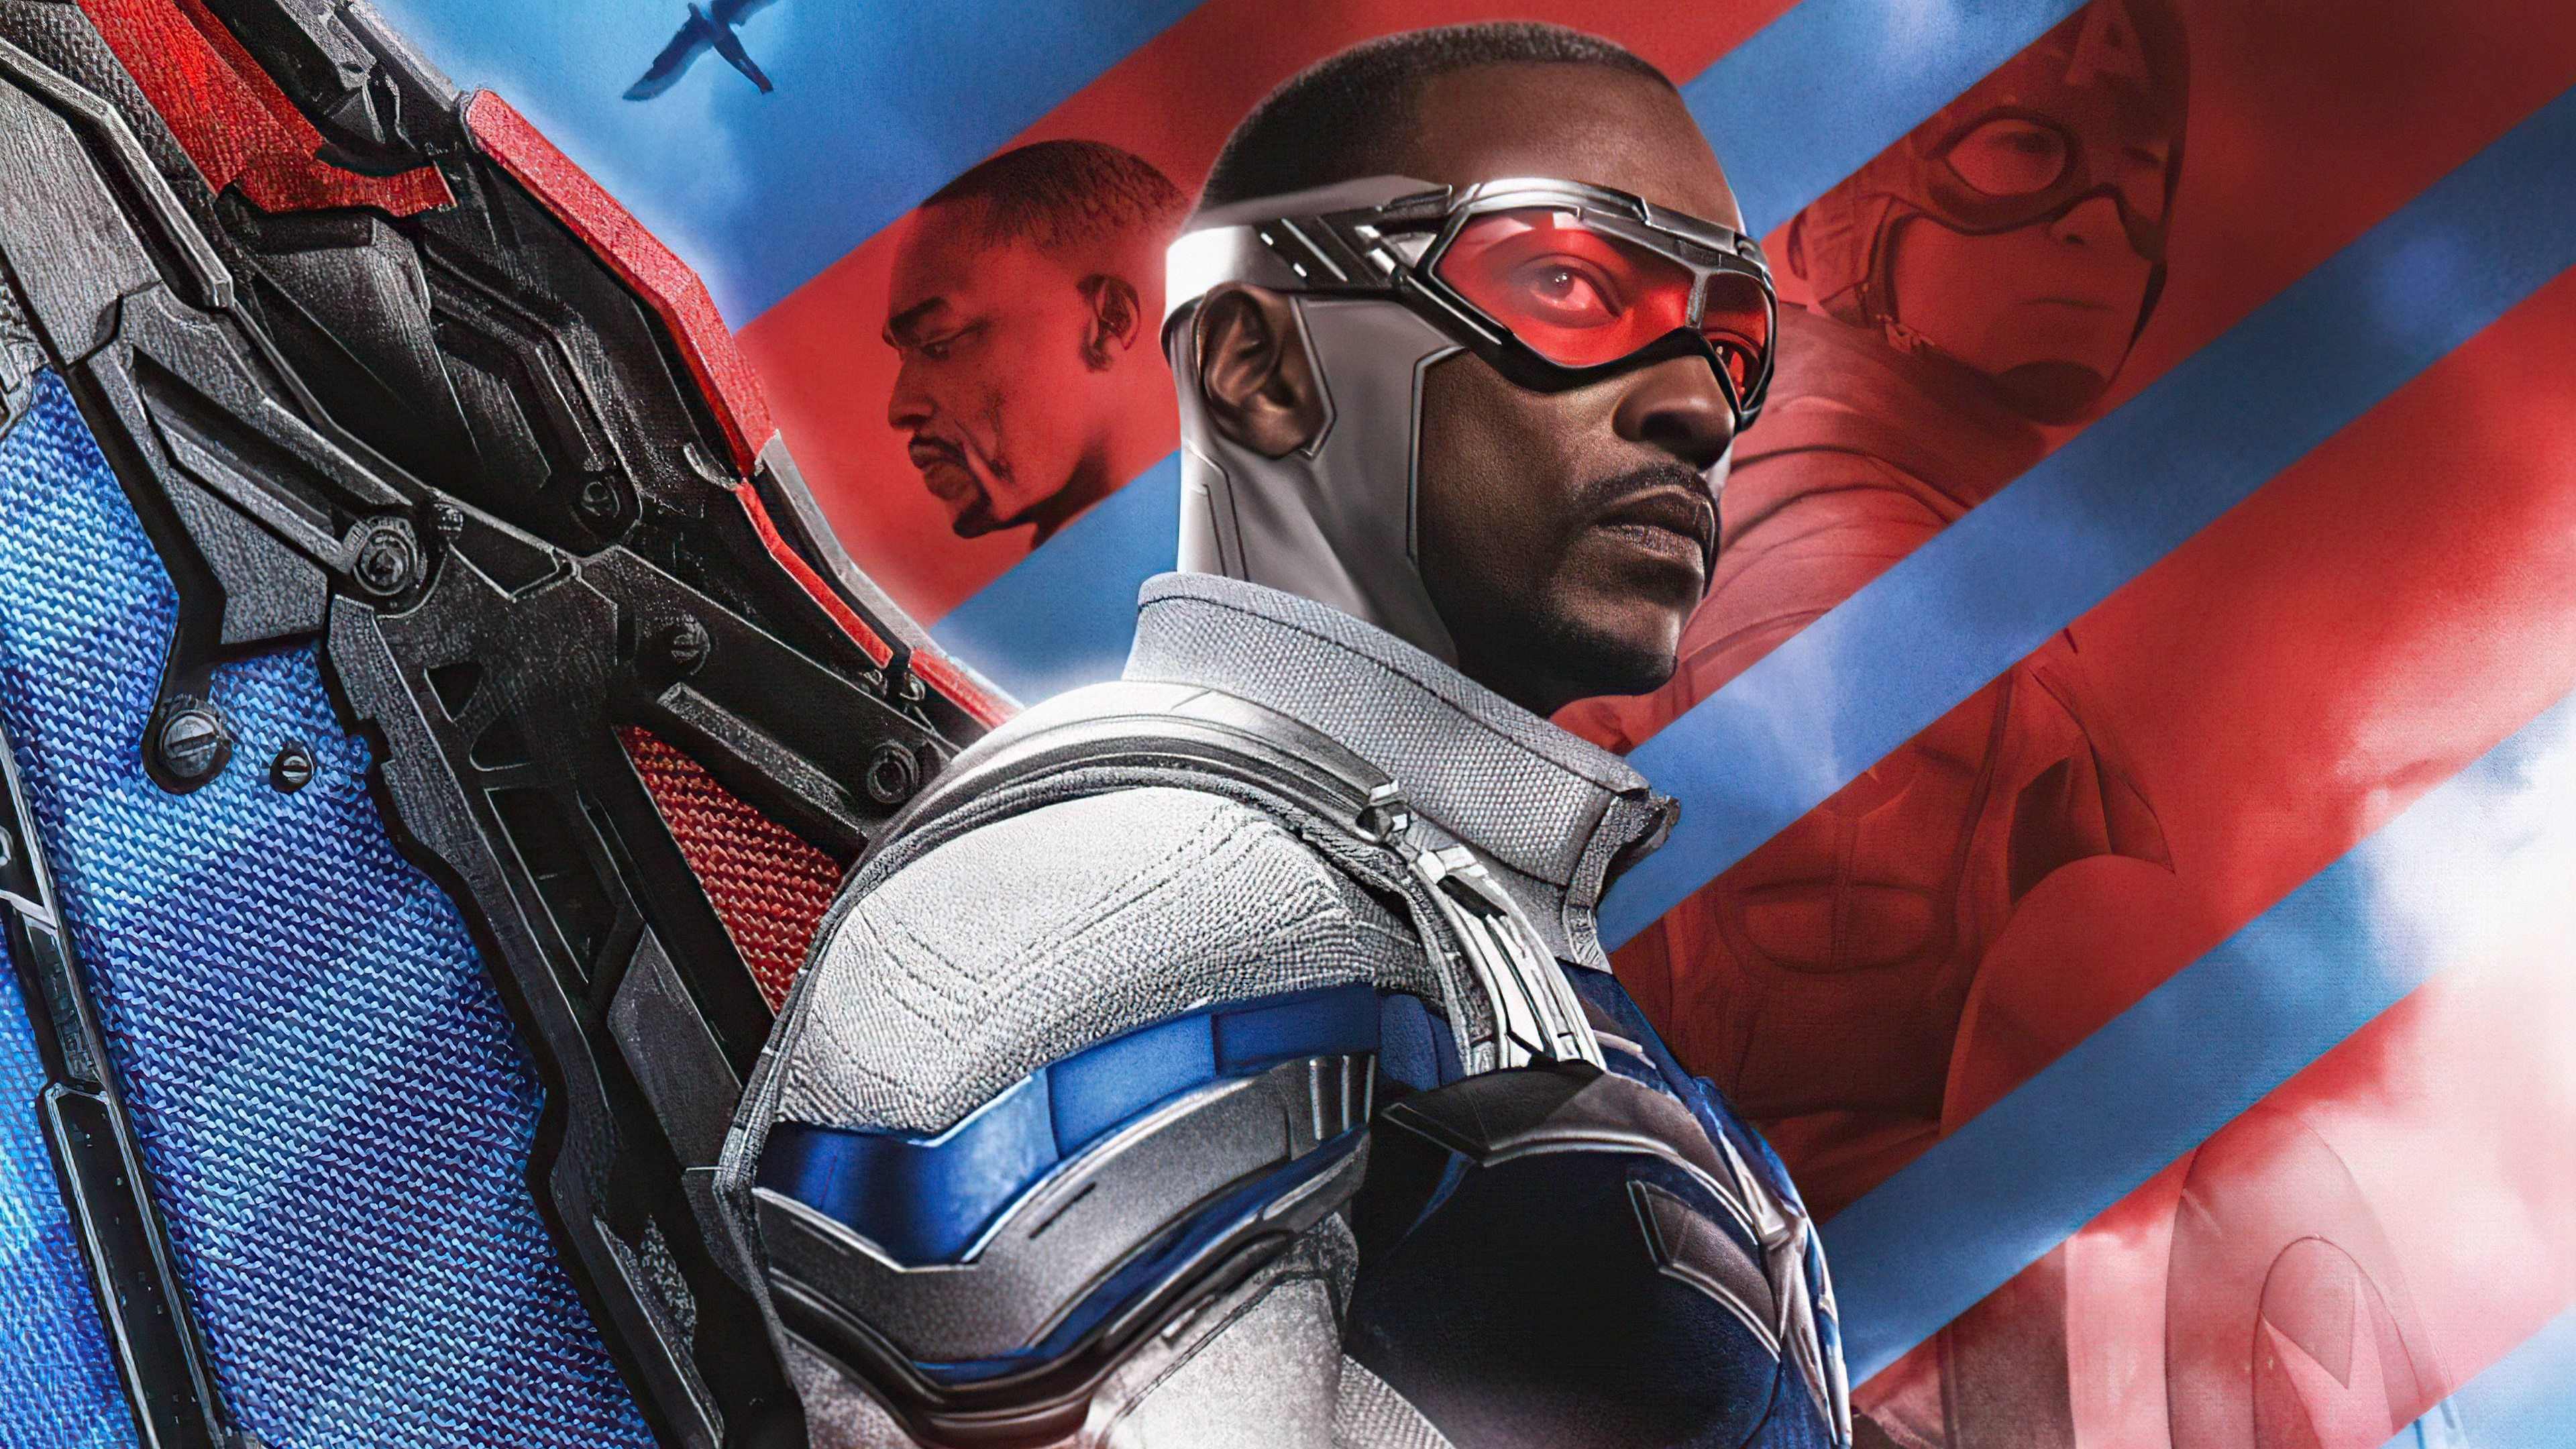 Wallpaper Anthony Macky Falcon and the Winter Soldier